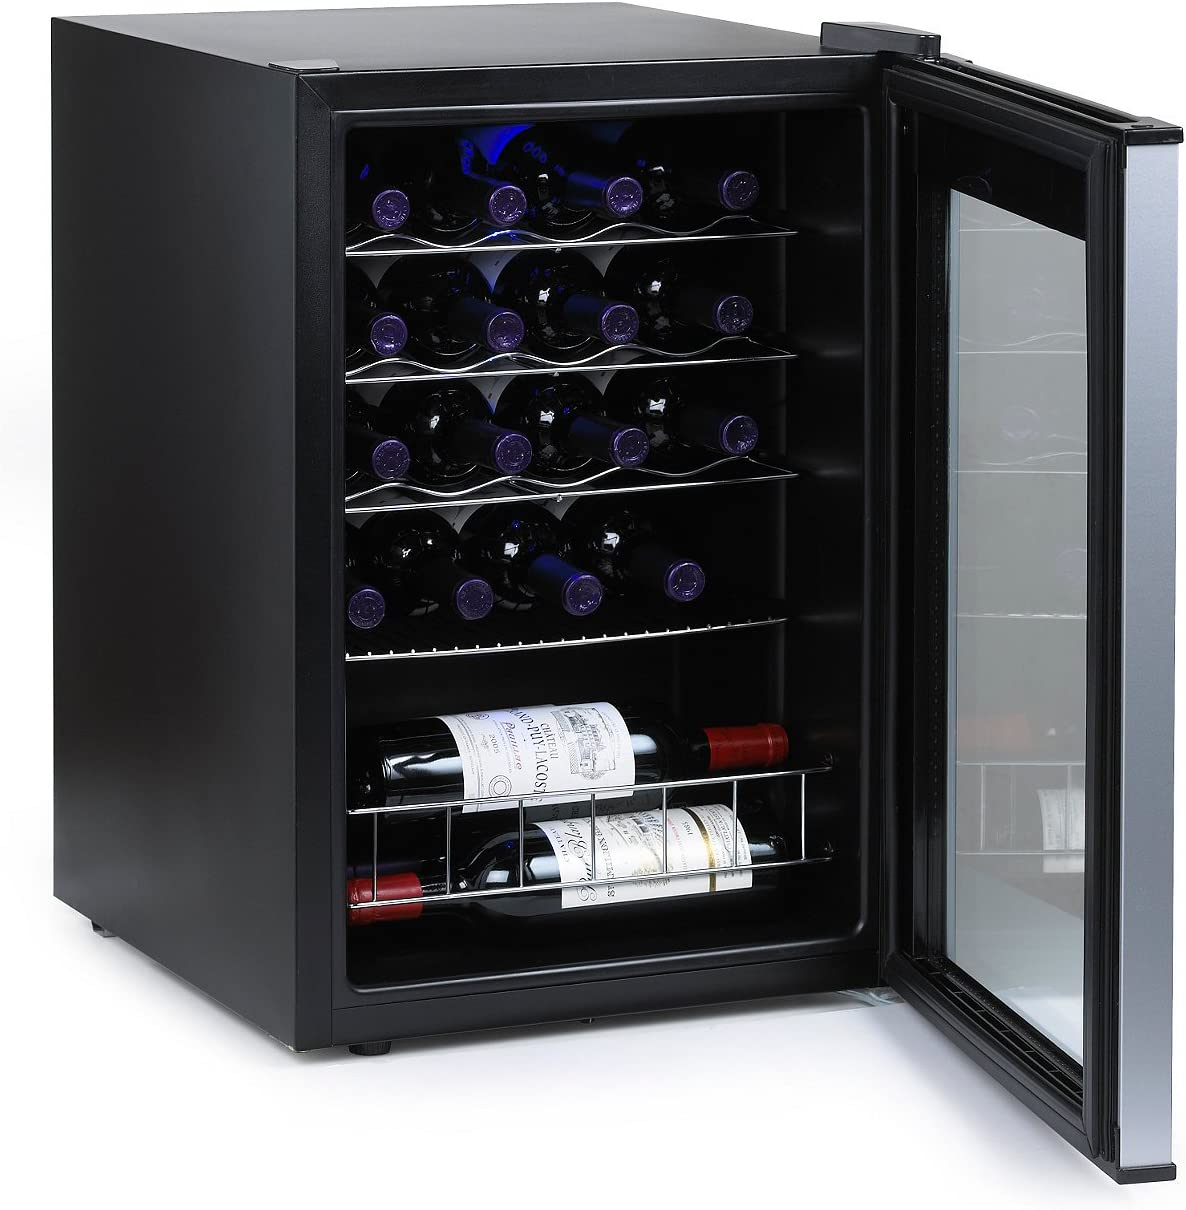 3. Wine Enthusiast Silent 18 Bottle Wine Cooler